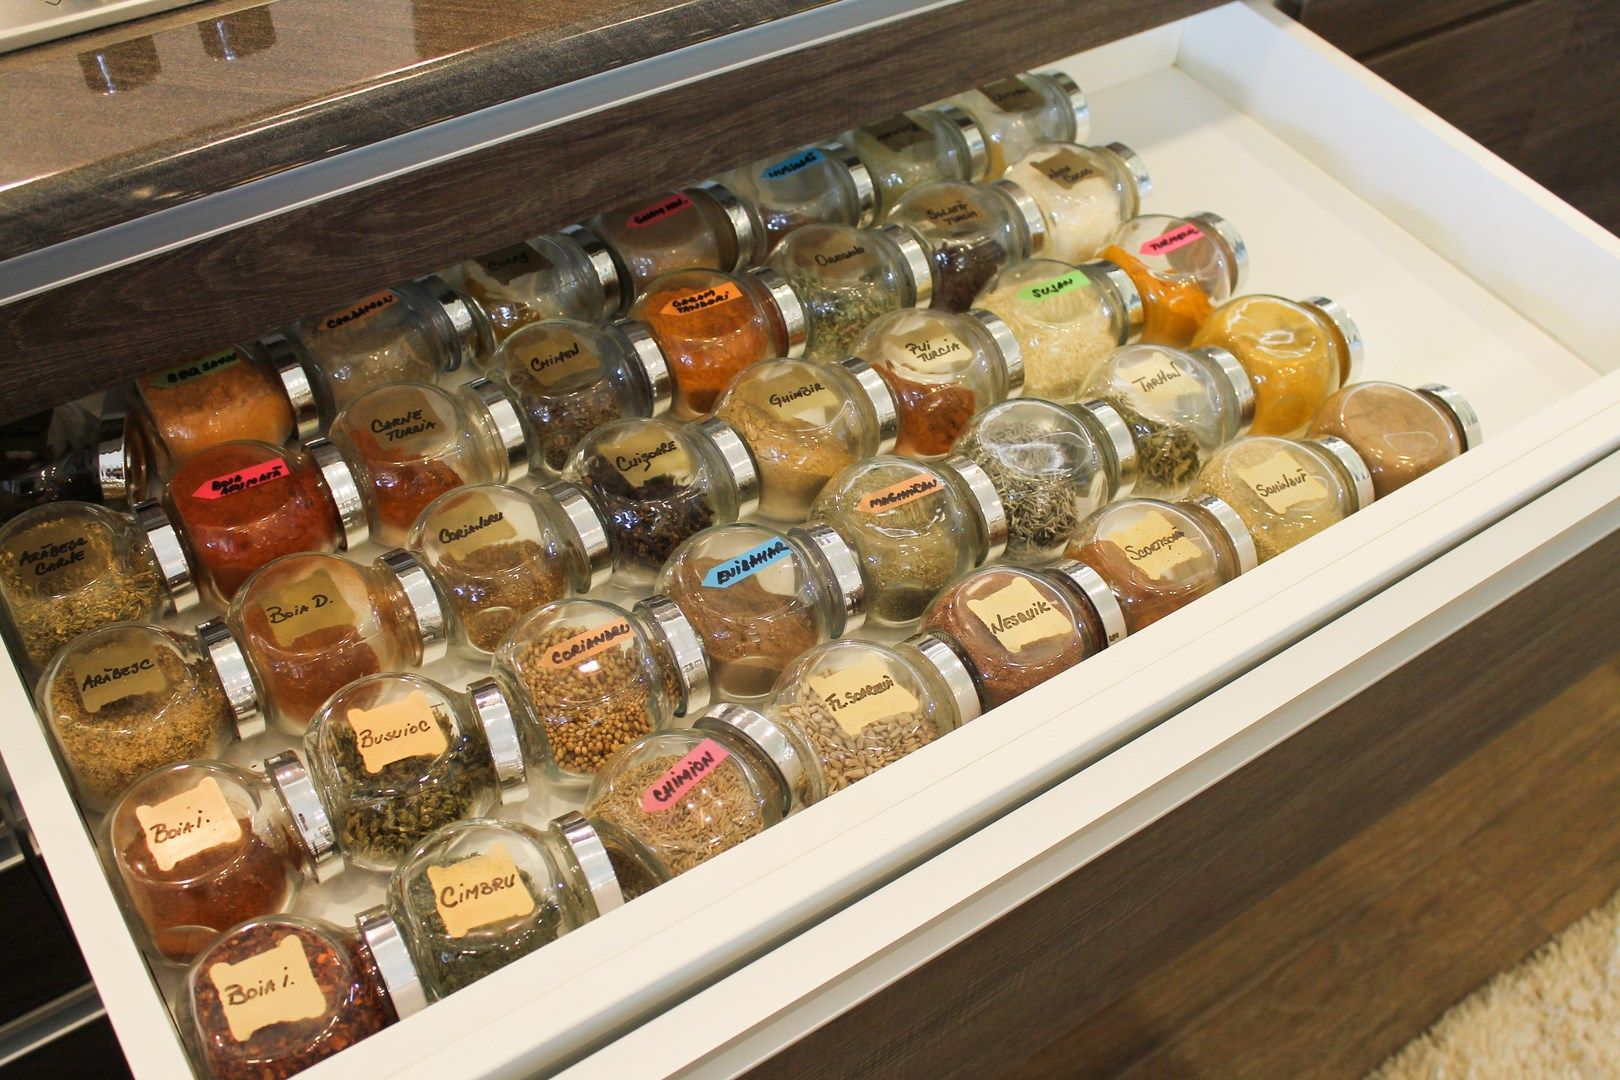 My spices organized in the kitchen - pic from hookedonsharing.com